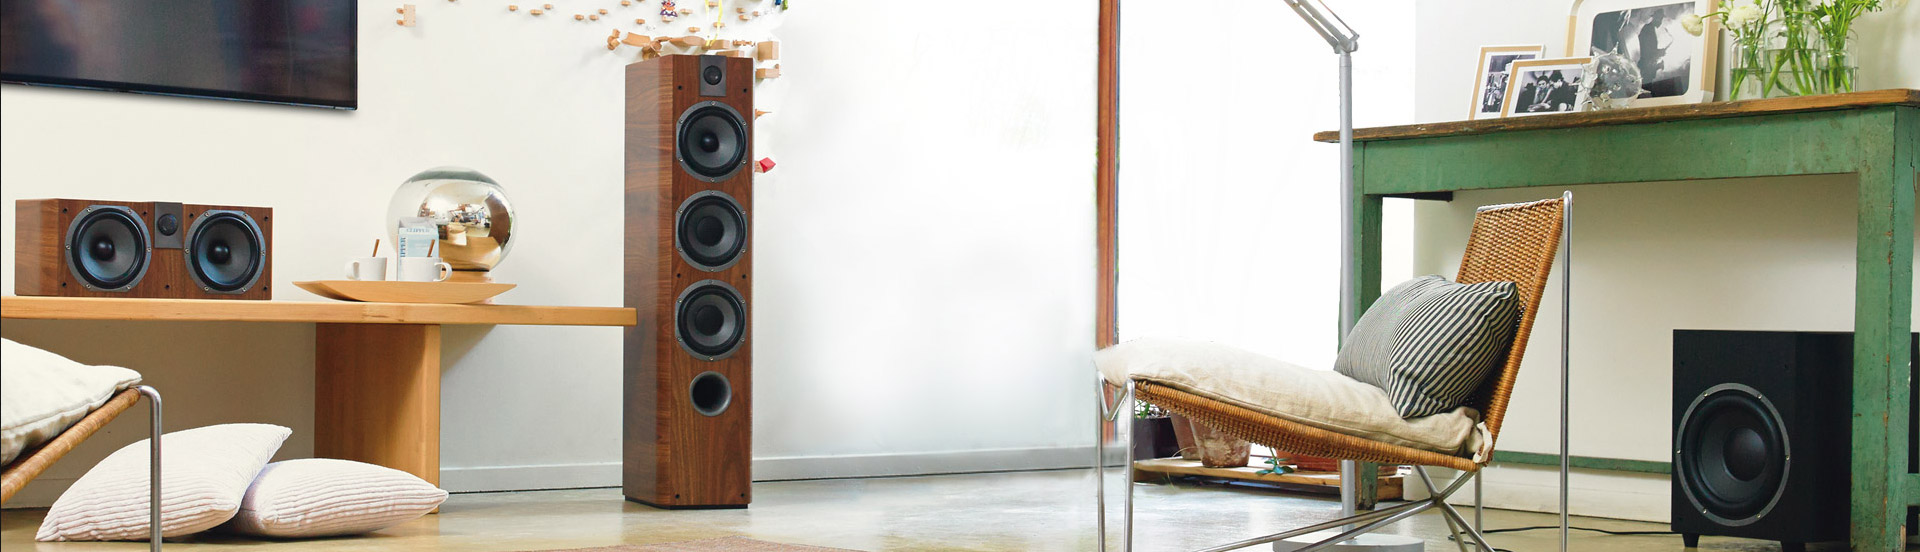 Ash Forest Hi-Fi Store in Kingston, Ontario - Speakers